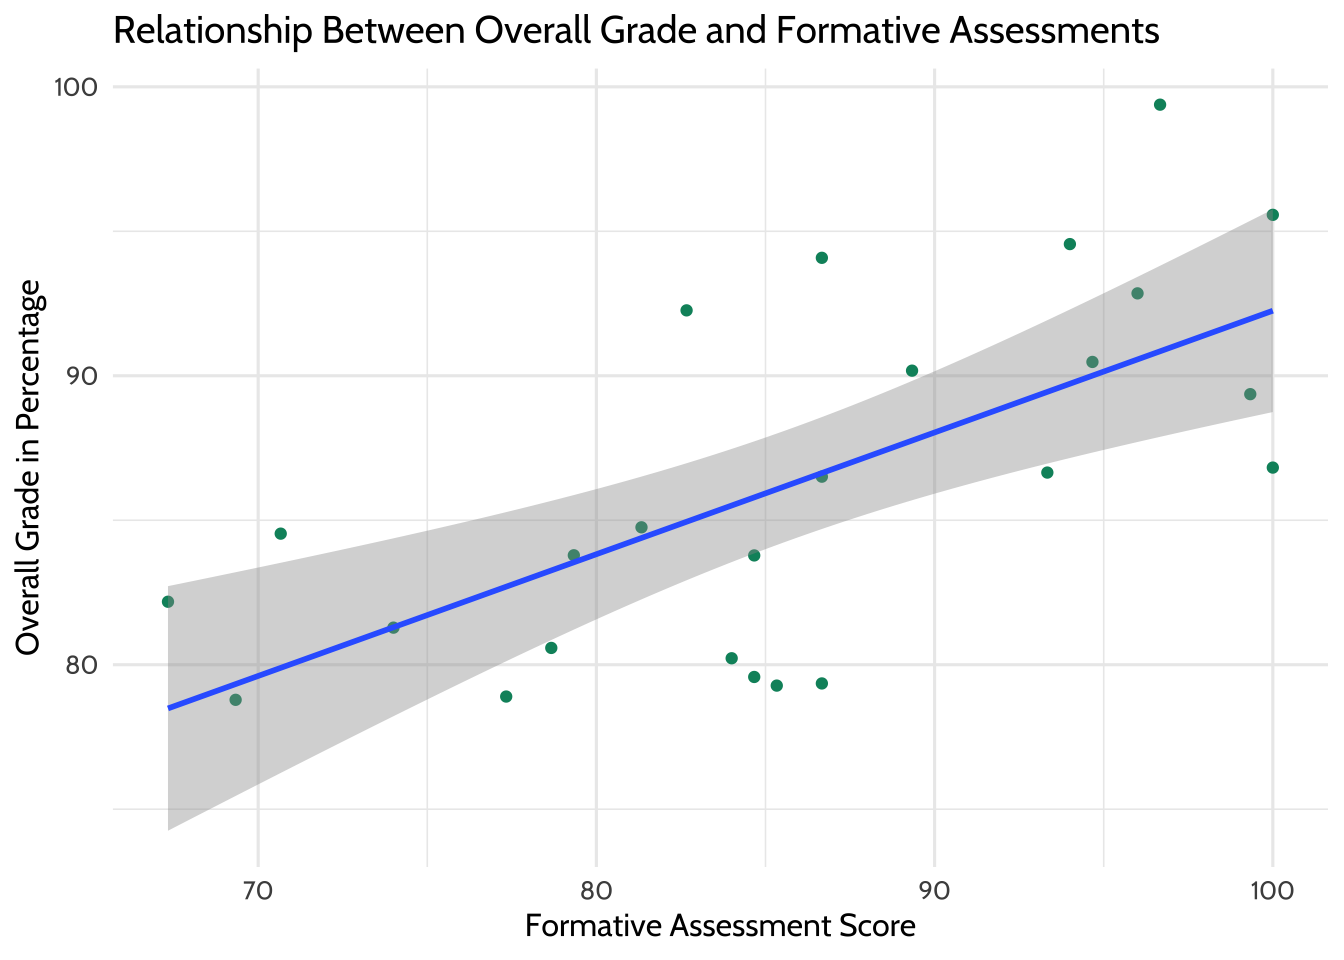 Relationship Between Overall Grade and Formative Assessments (with Line of Best Fit)